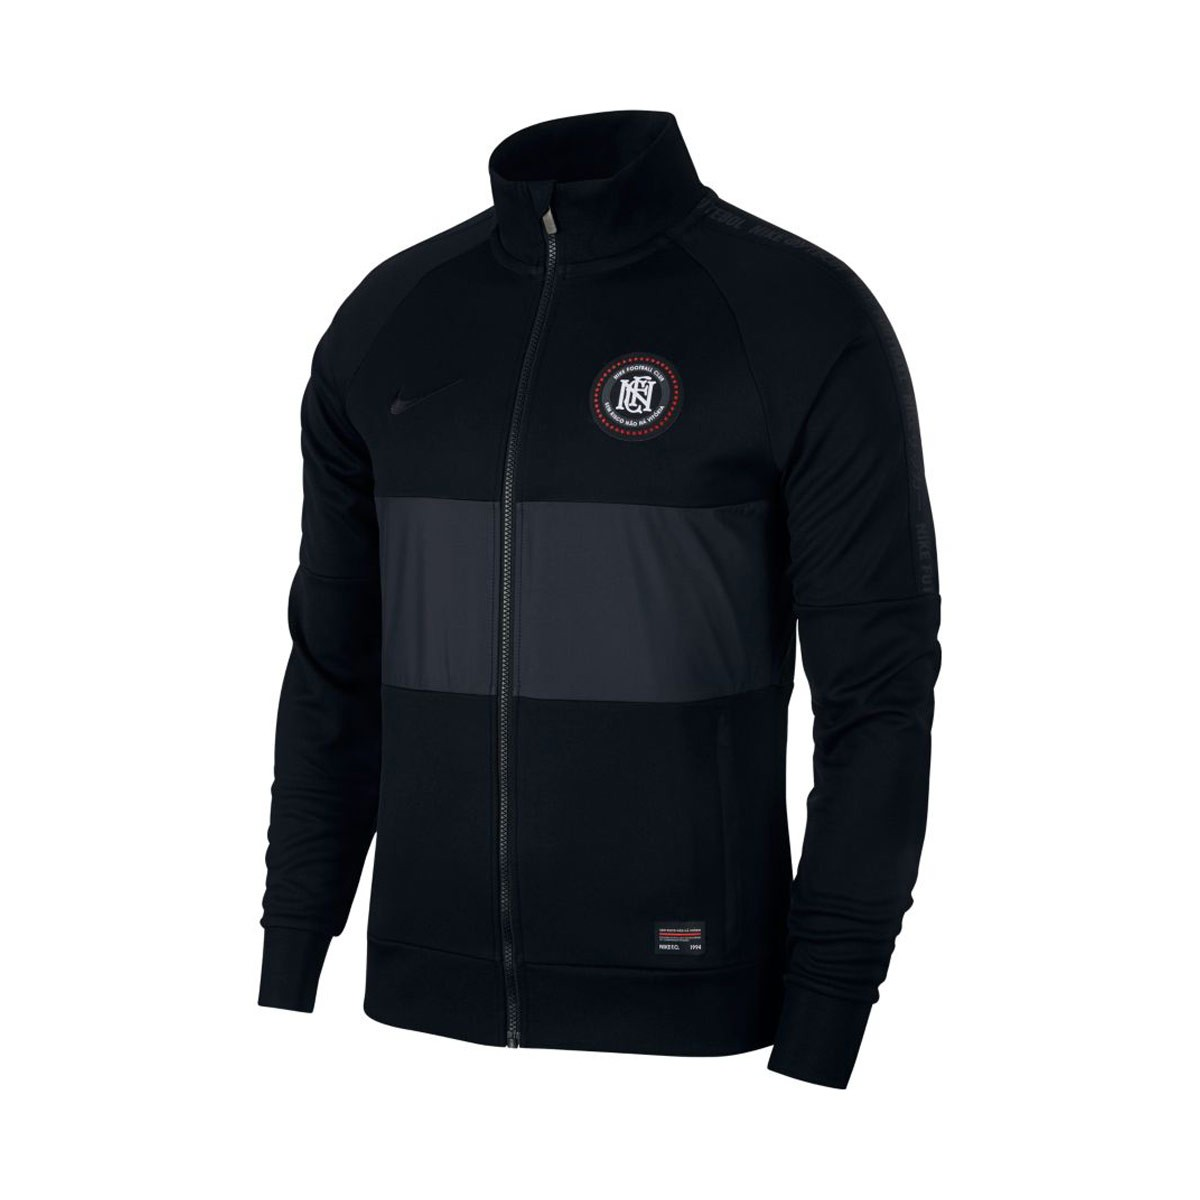 a3458c8bfbcd Jacket Nike Nike F.C. Black - Football store Fútbol Emotion